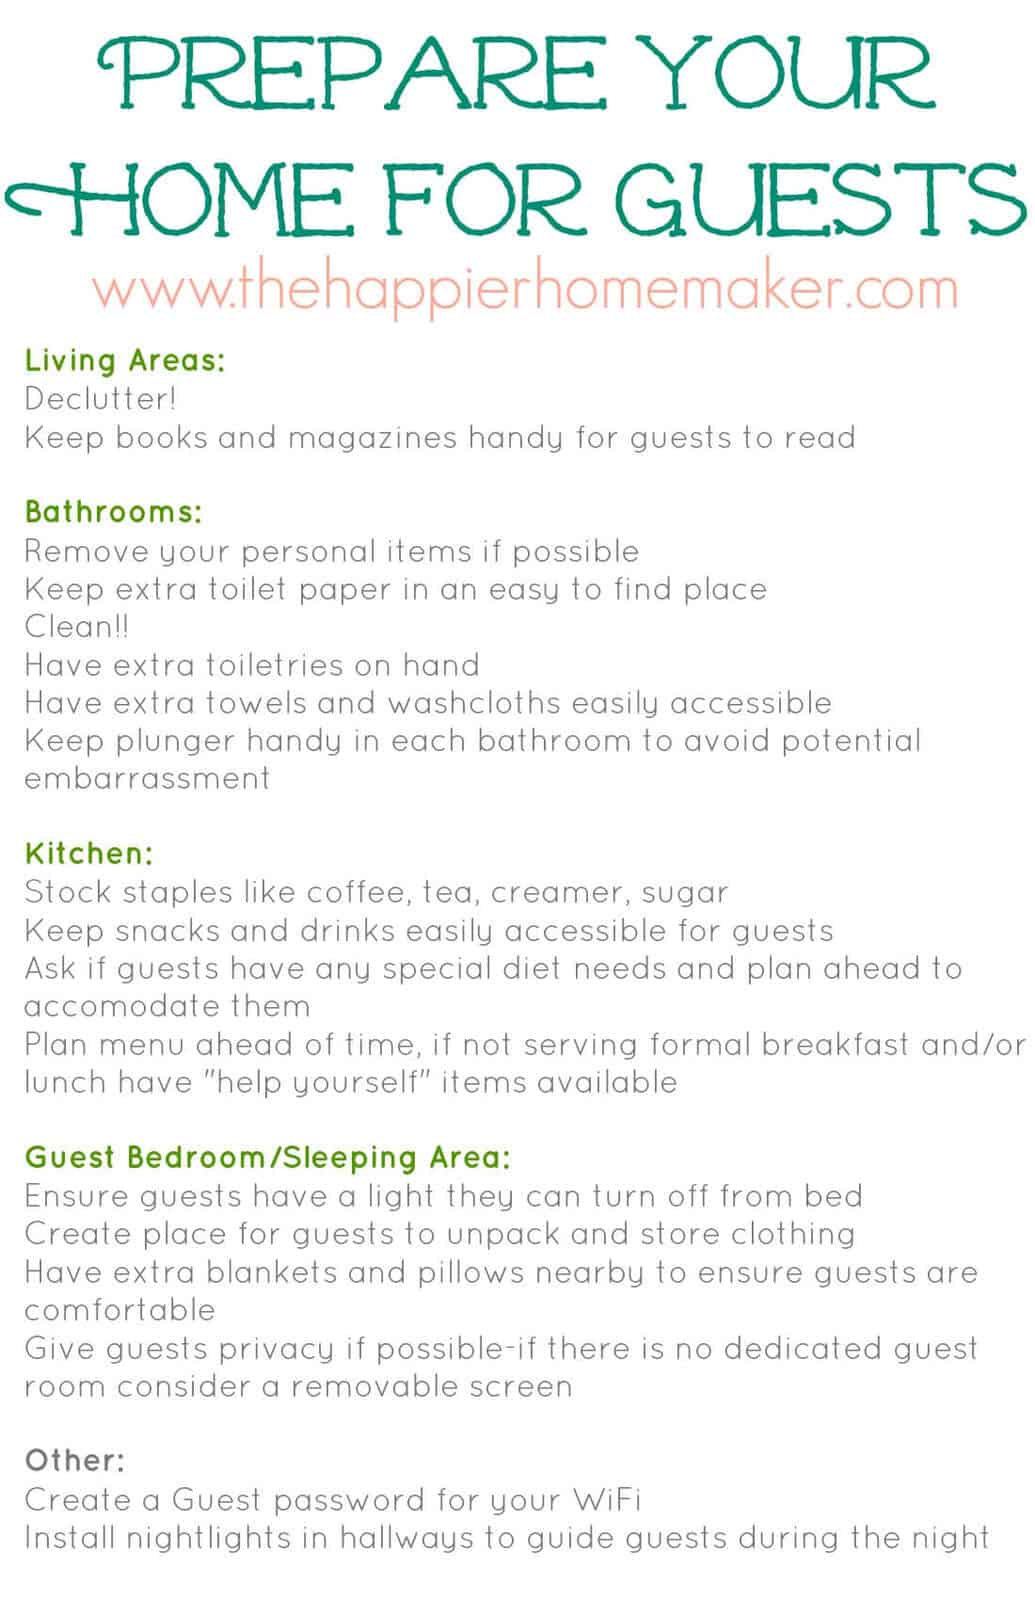 How To Prepare For Holiday House Guests And Free Printable Checklist The Happier Homemaker